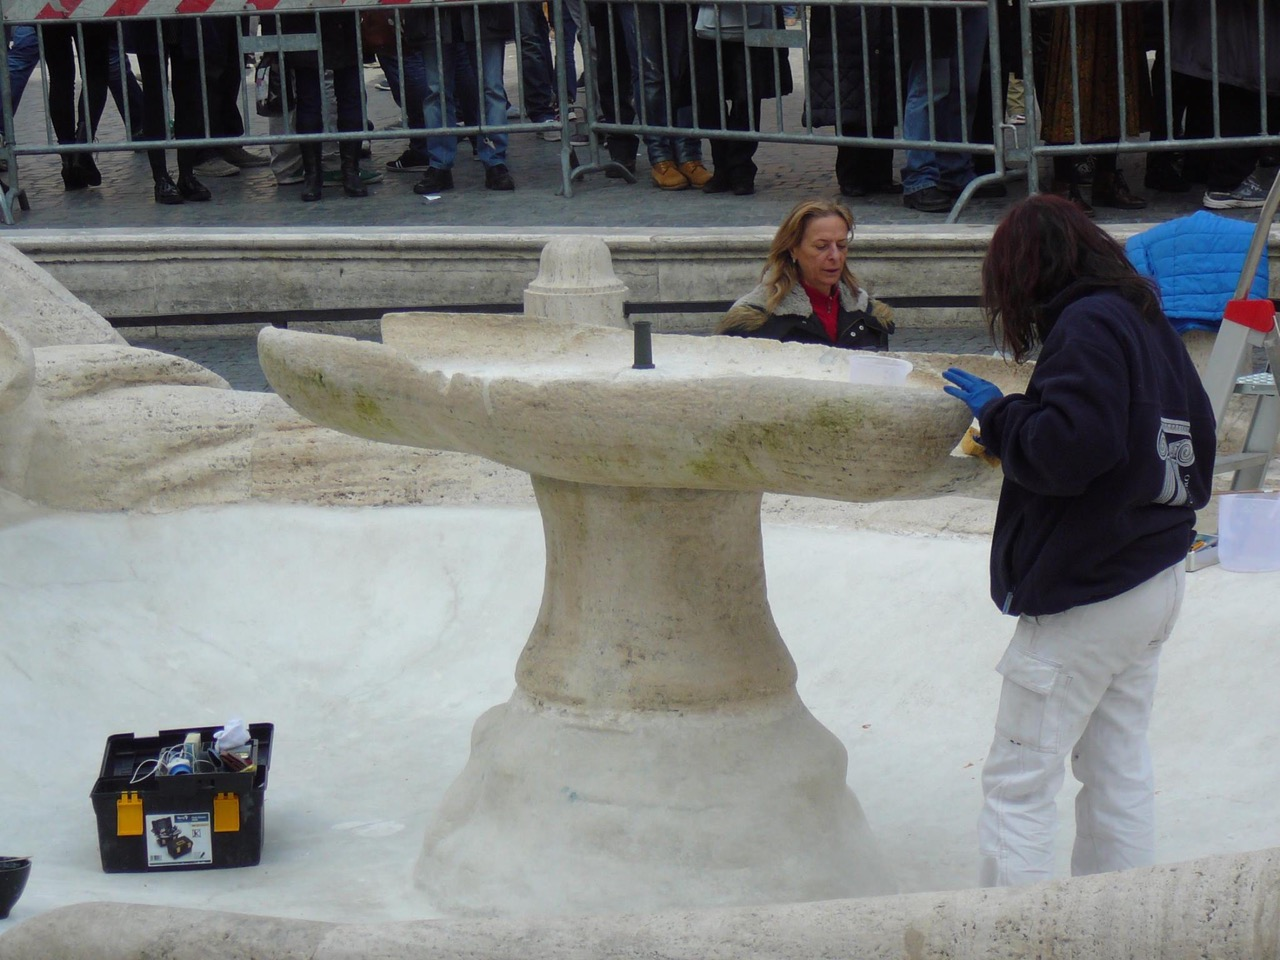 Restorers working on the Barcaccia fountain in the wake of last week's damage (photo by Valerio Mezzolani)